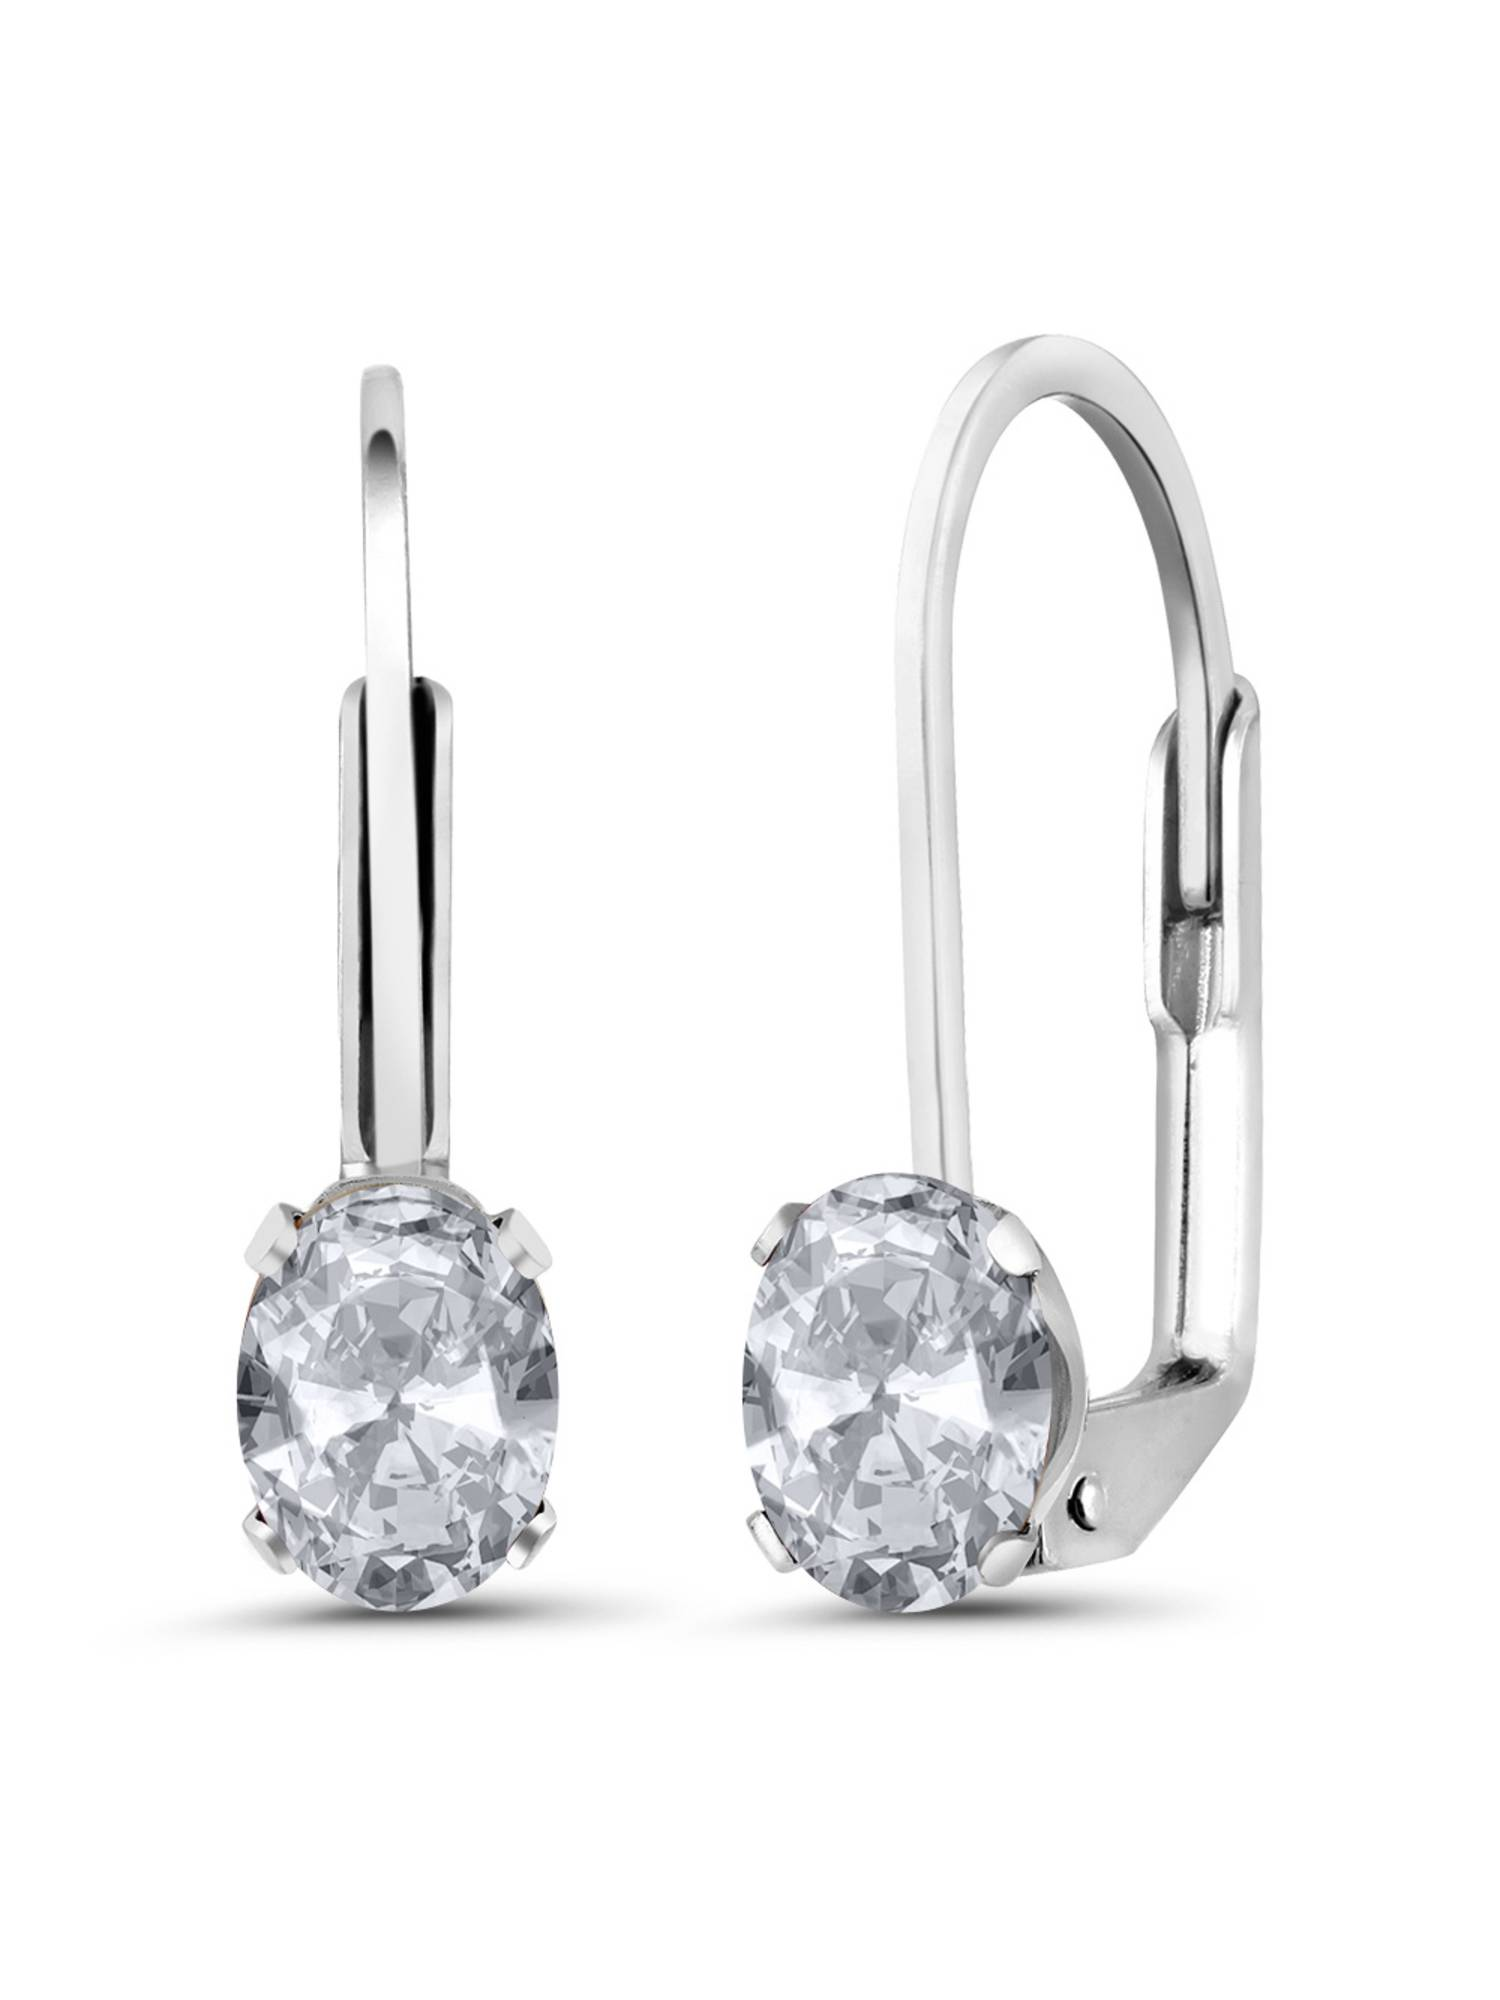 1.10 Ct Oval Shape White Topaz 925 Silver Stud Earrings